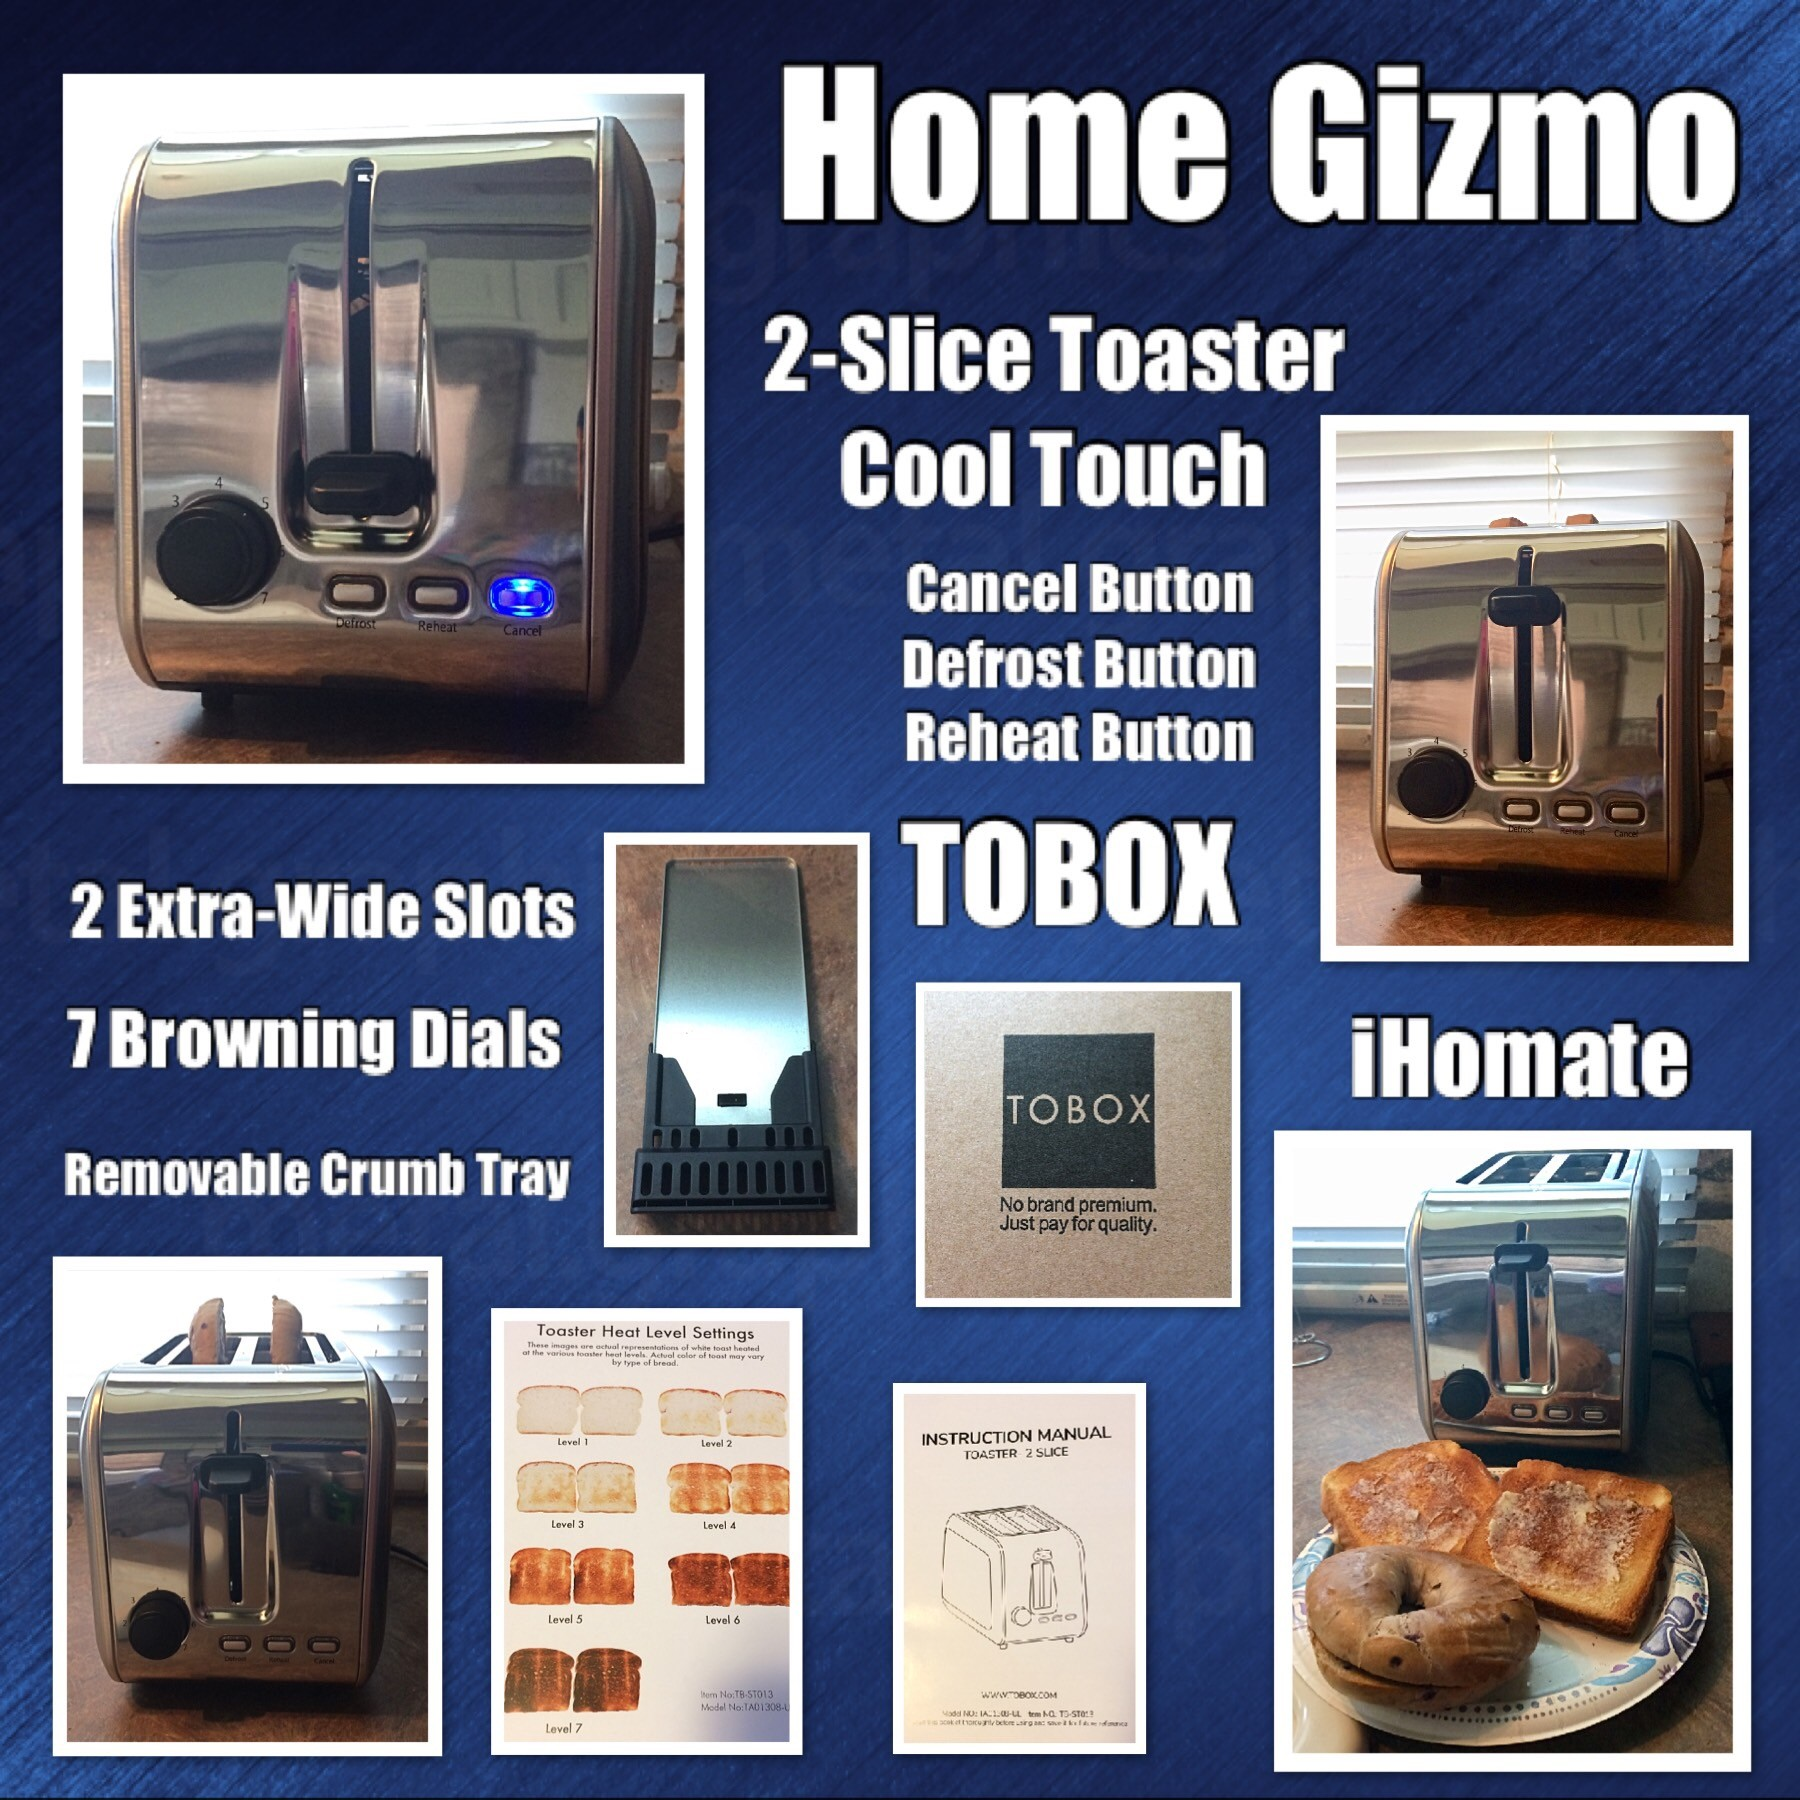 2-Slice Toaster, Home Gizmo Cool Touch Toasters With 2 Extra-Wide Slots, 7 Browning Dials And Removable Crumb Tray - Brushed Stainless Steel